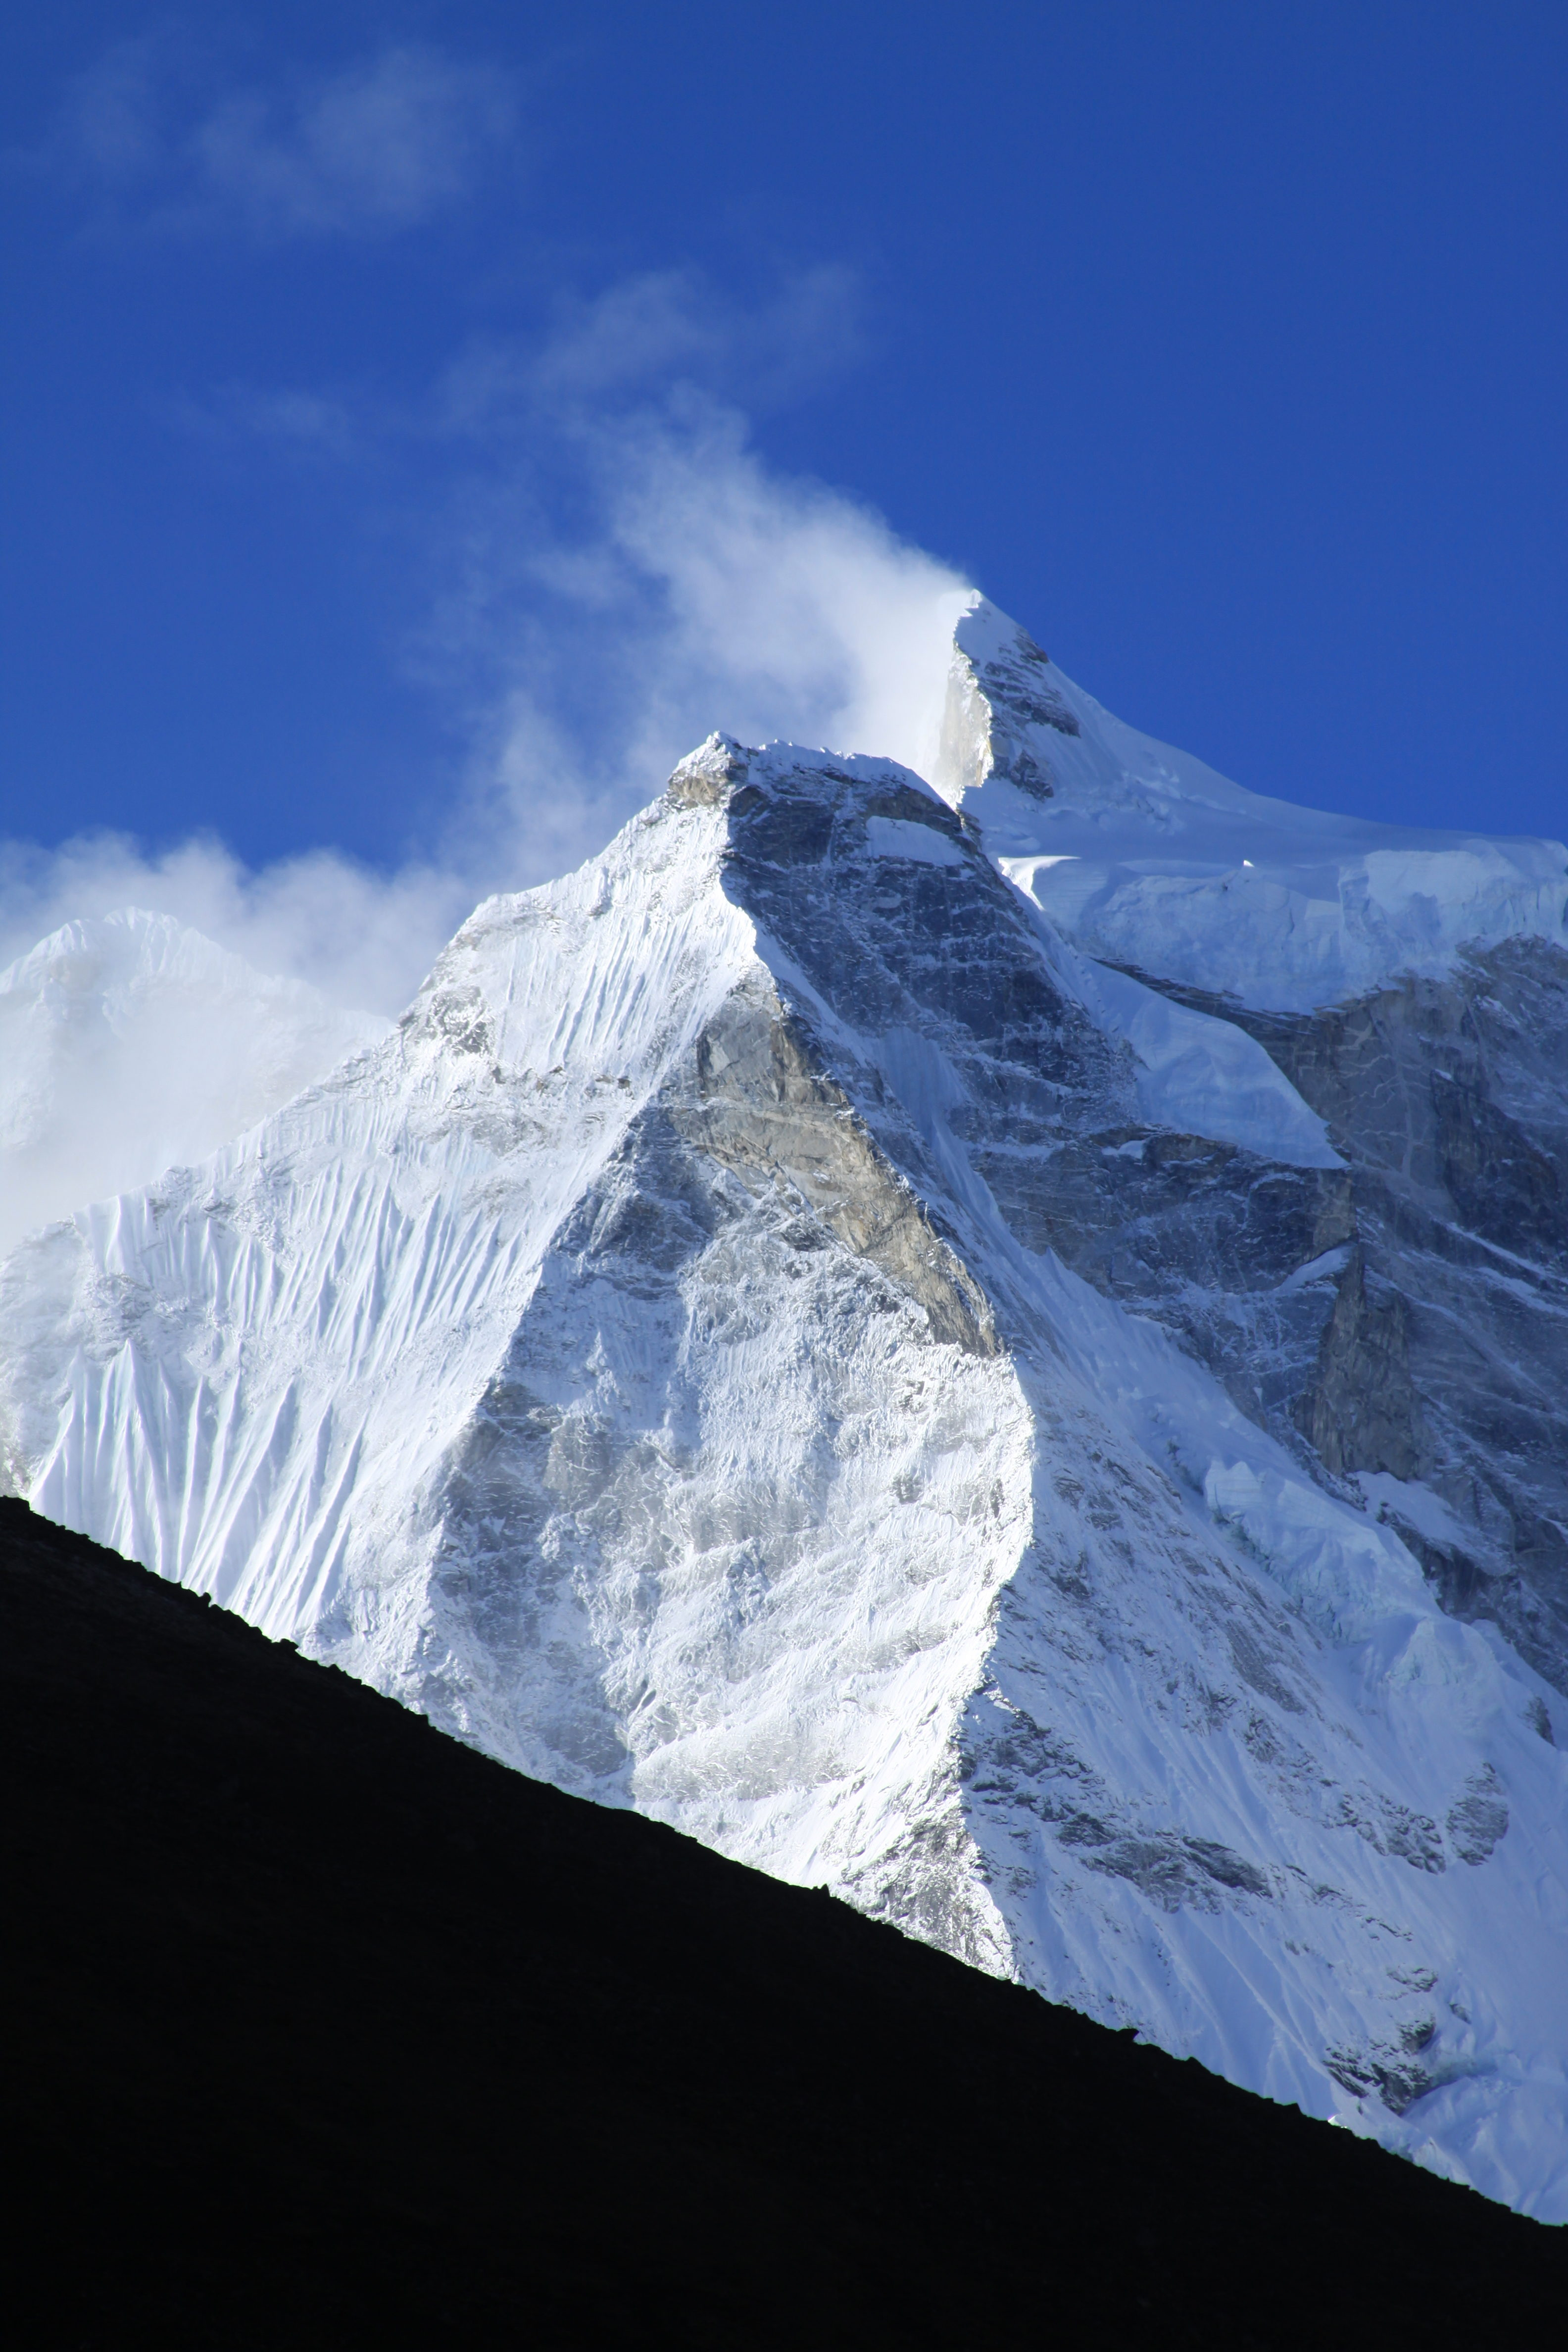 Just another crazy mountain in the Himalayas